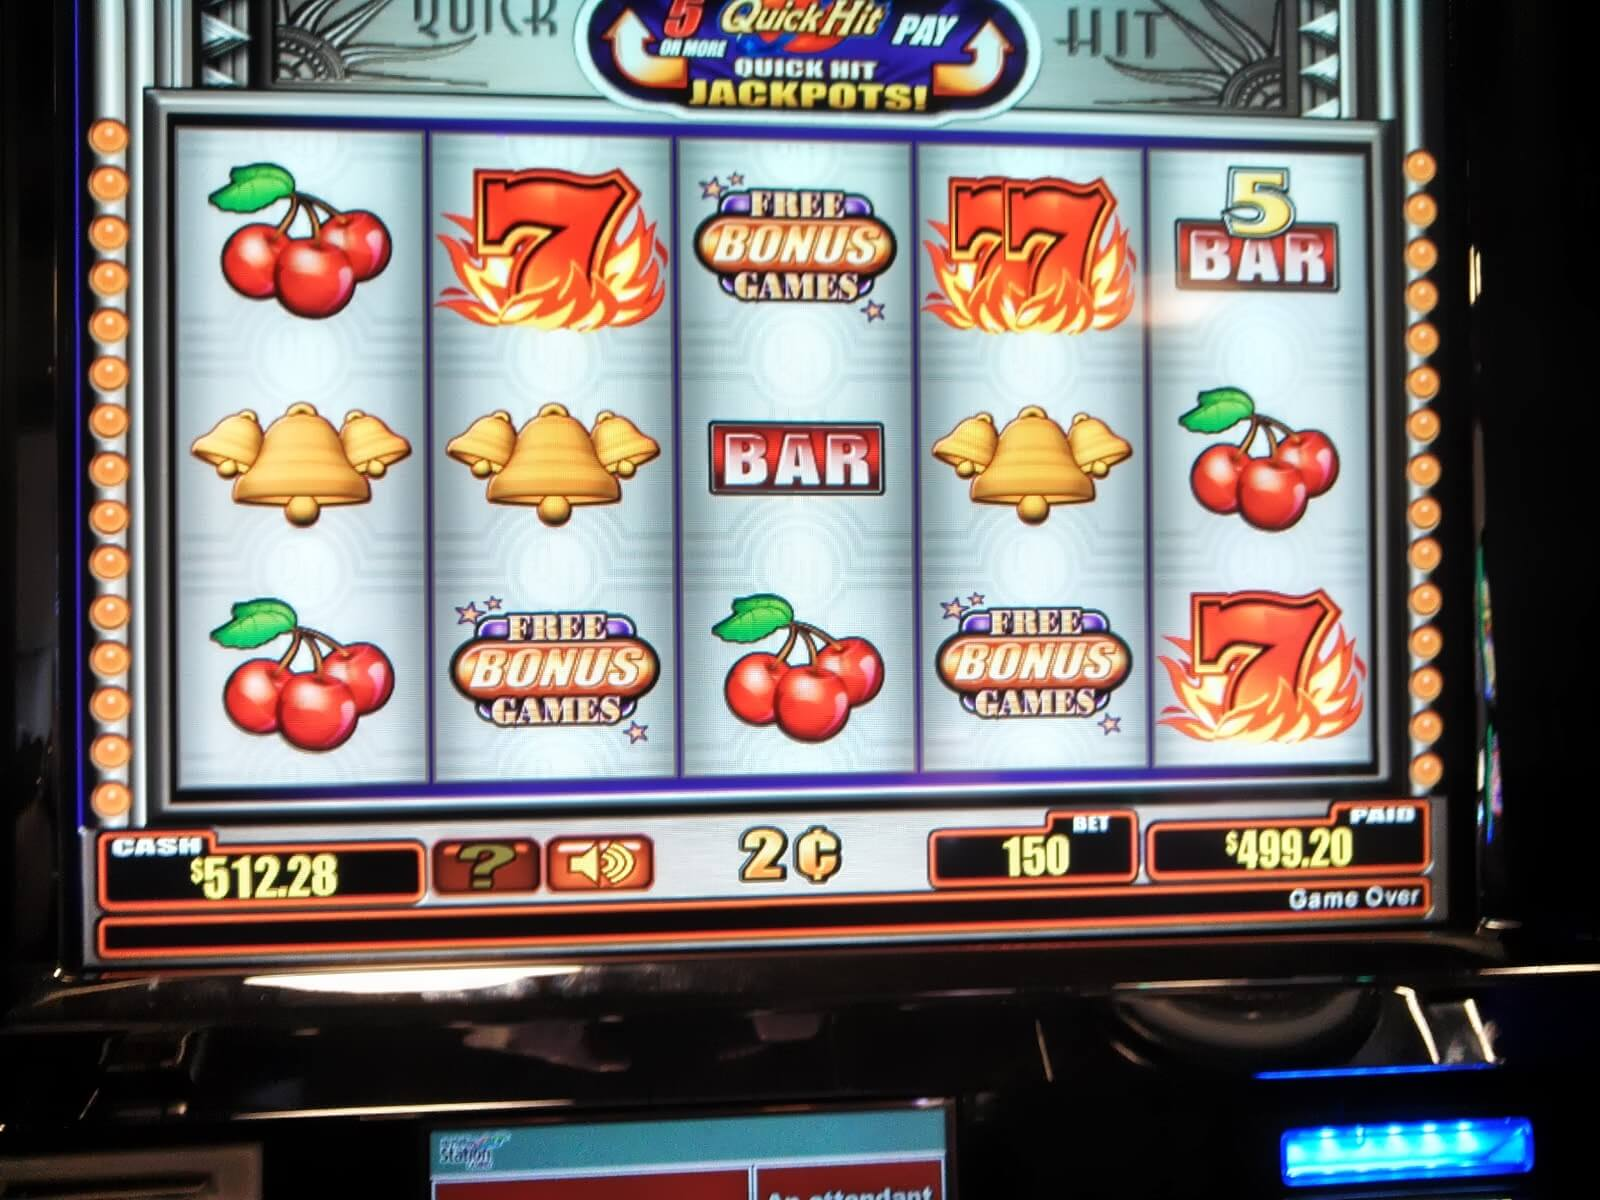 Play penny slots and win